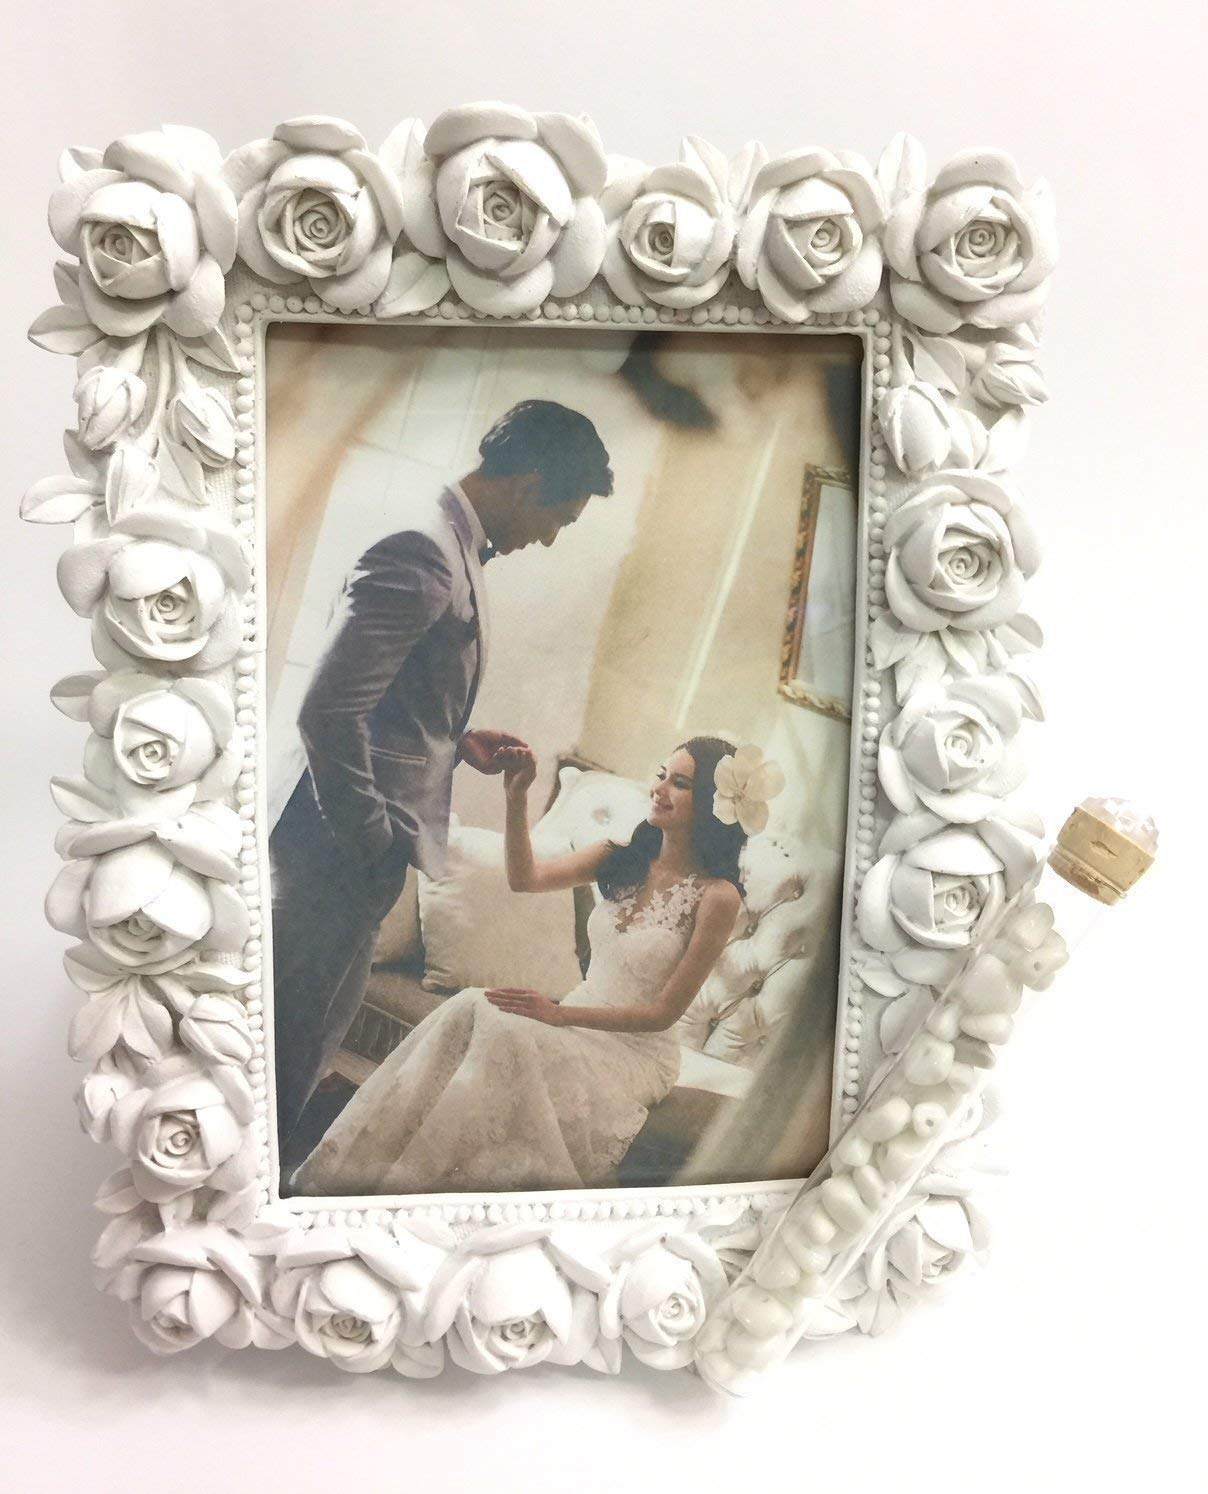 Jewish Wedding White Roses Photo Picture Frame With a Container for Broken Wedding Glass, 4 x 6 Picture Bridal Shower Or Wedding Gift